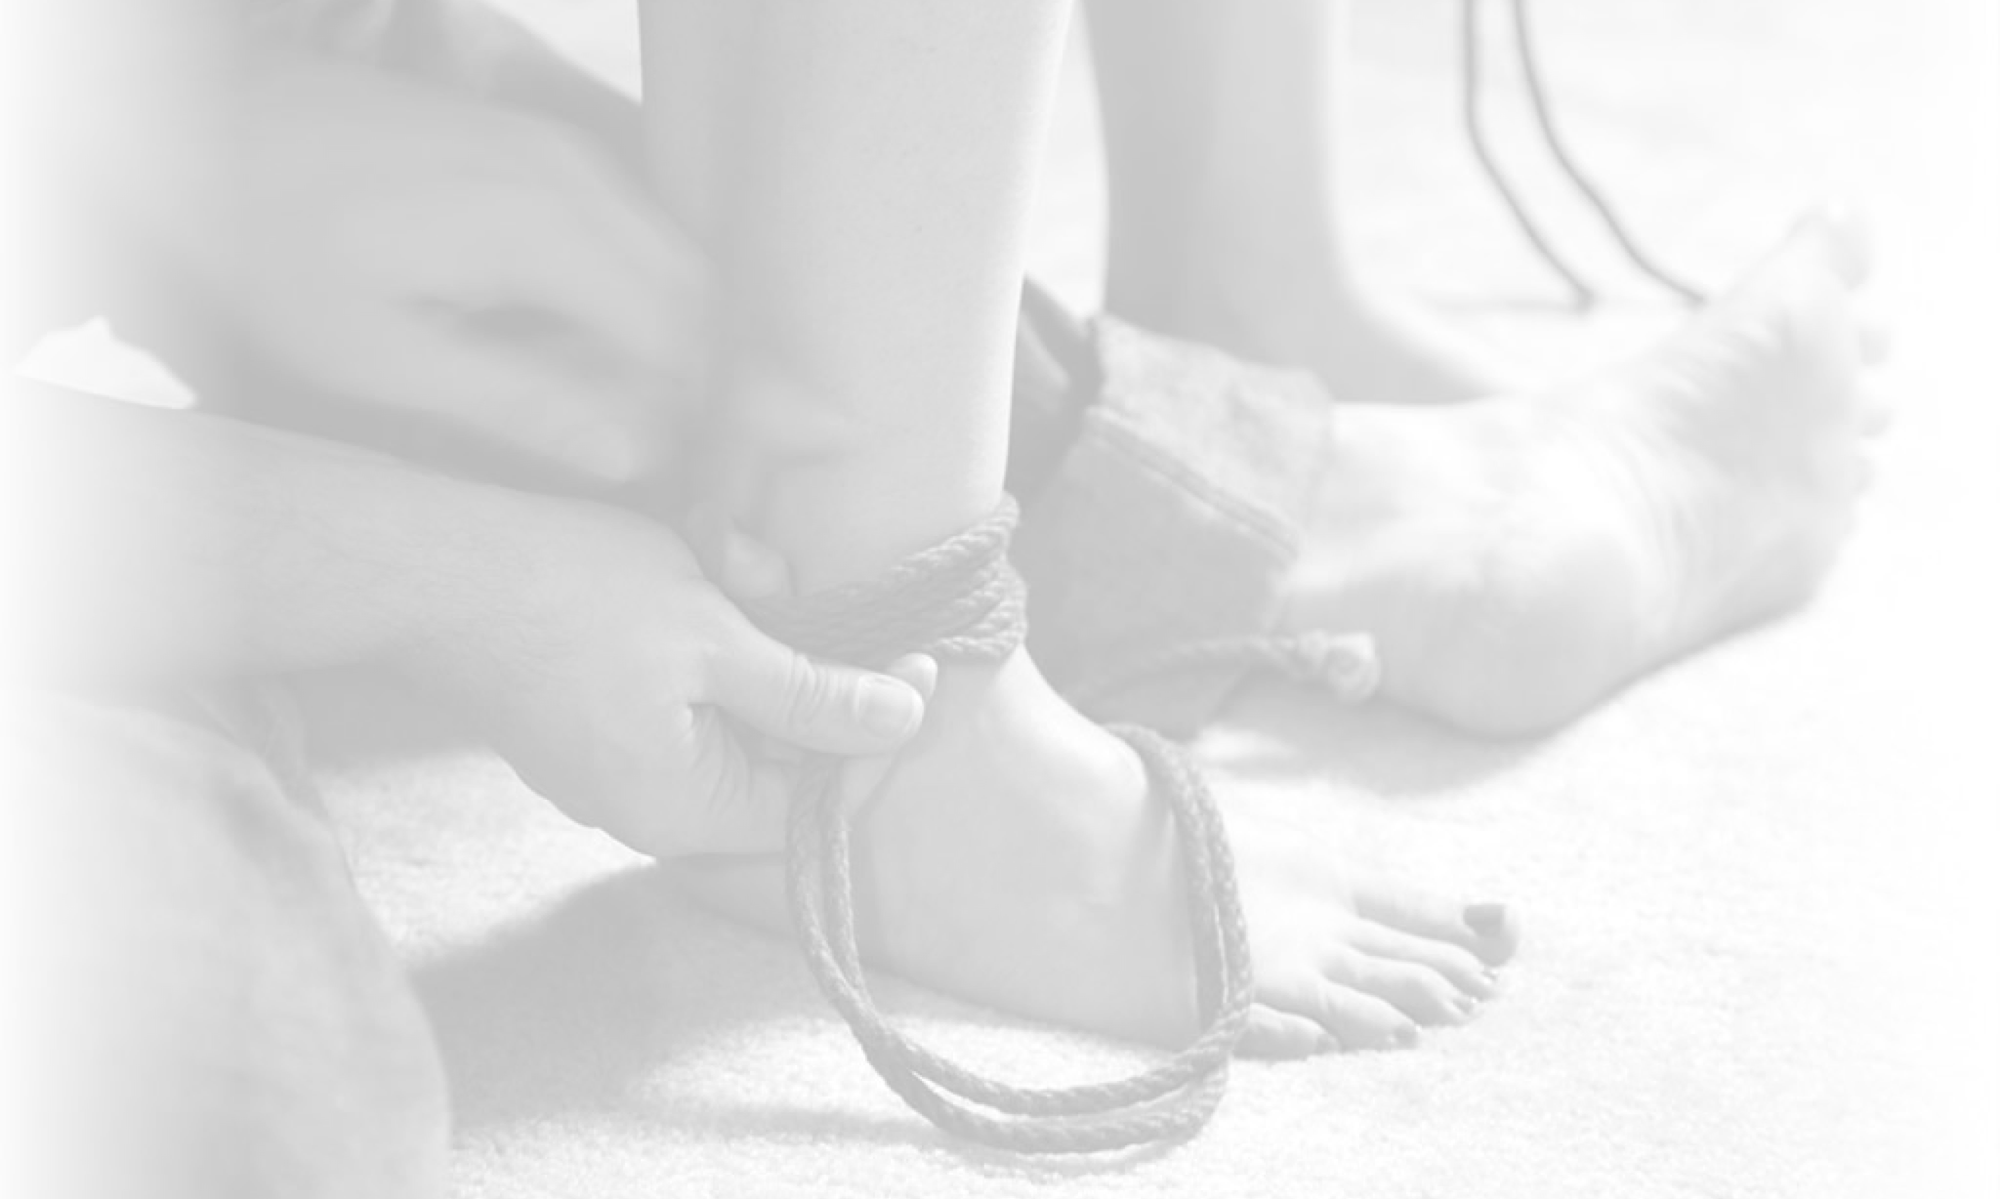 Image of feet with ankle being tied in a rope by male hands